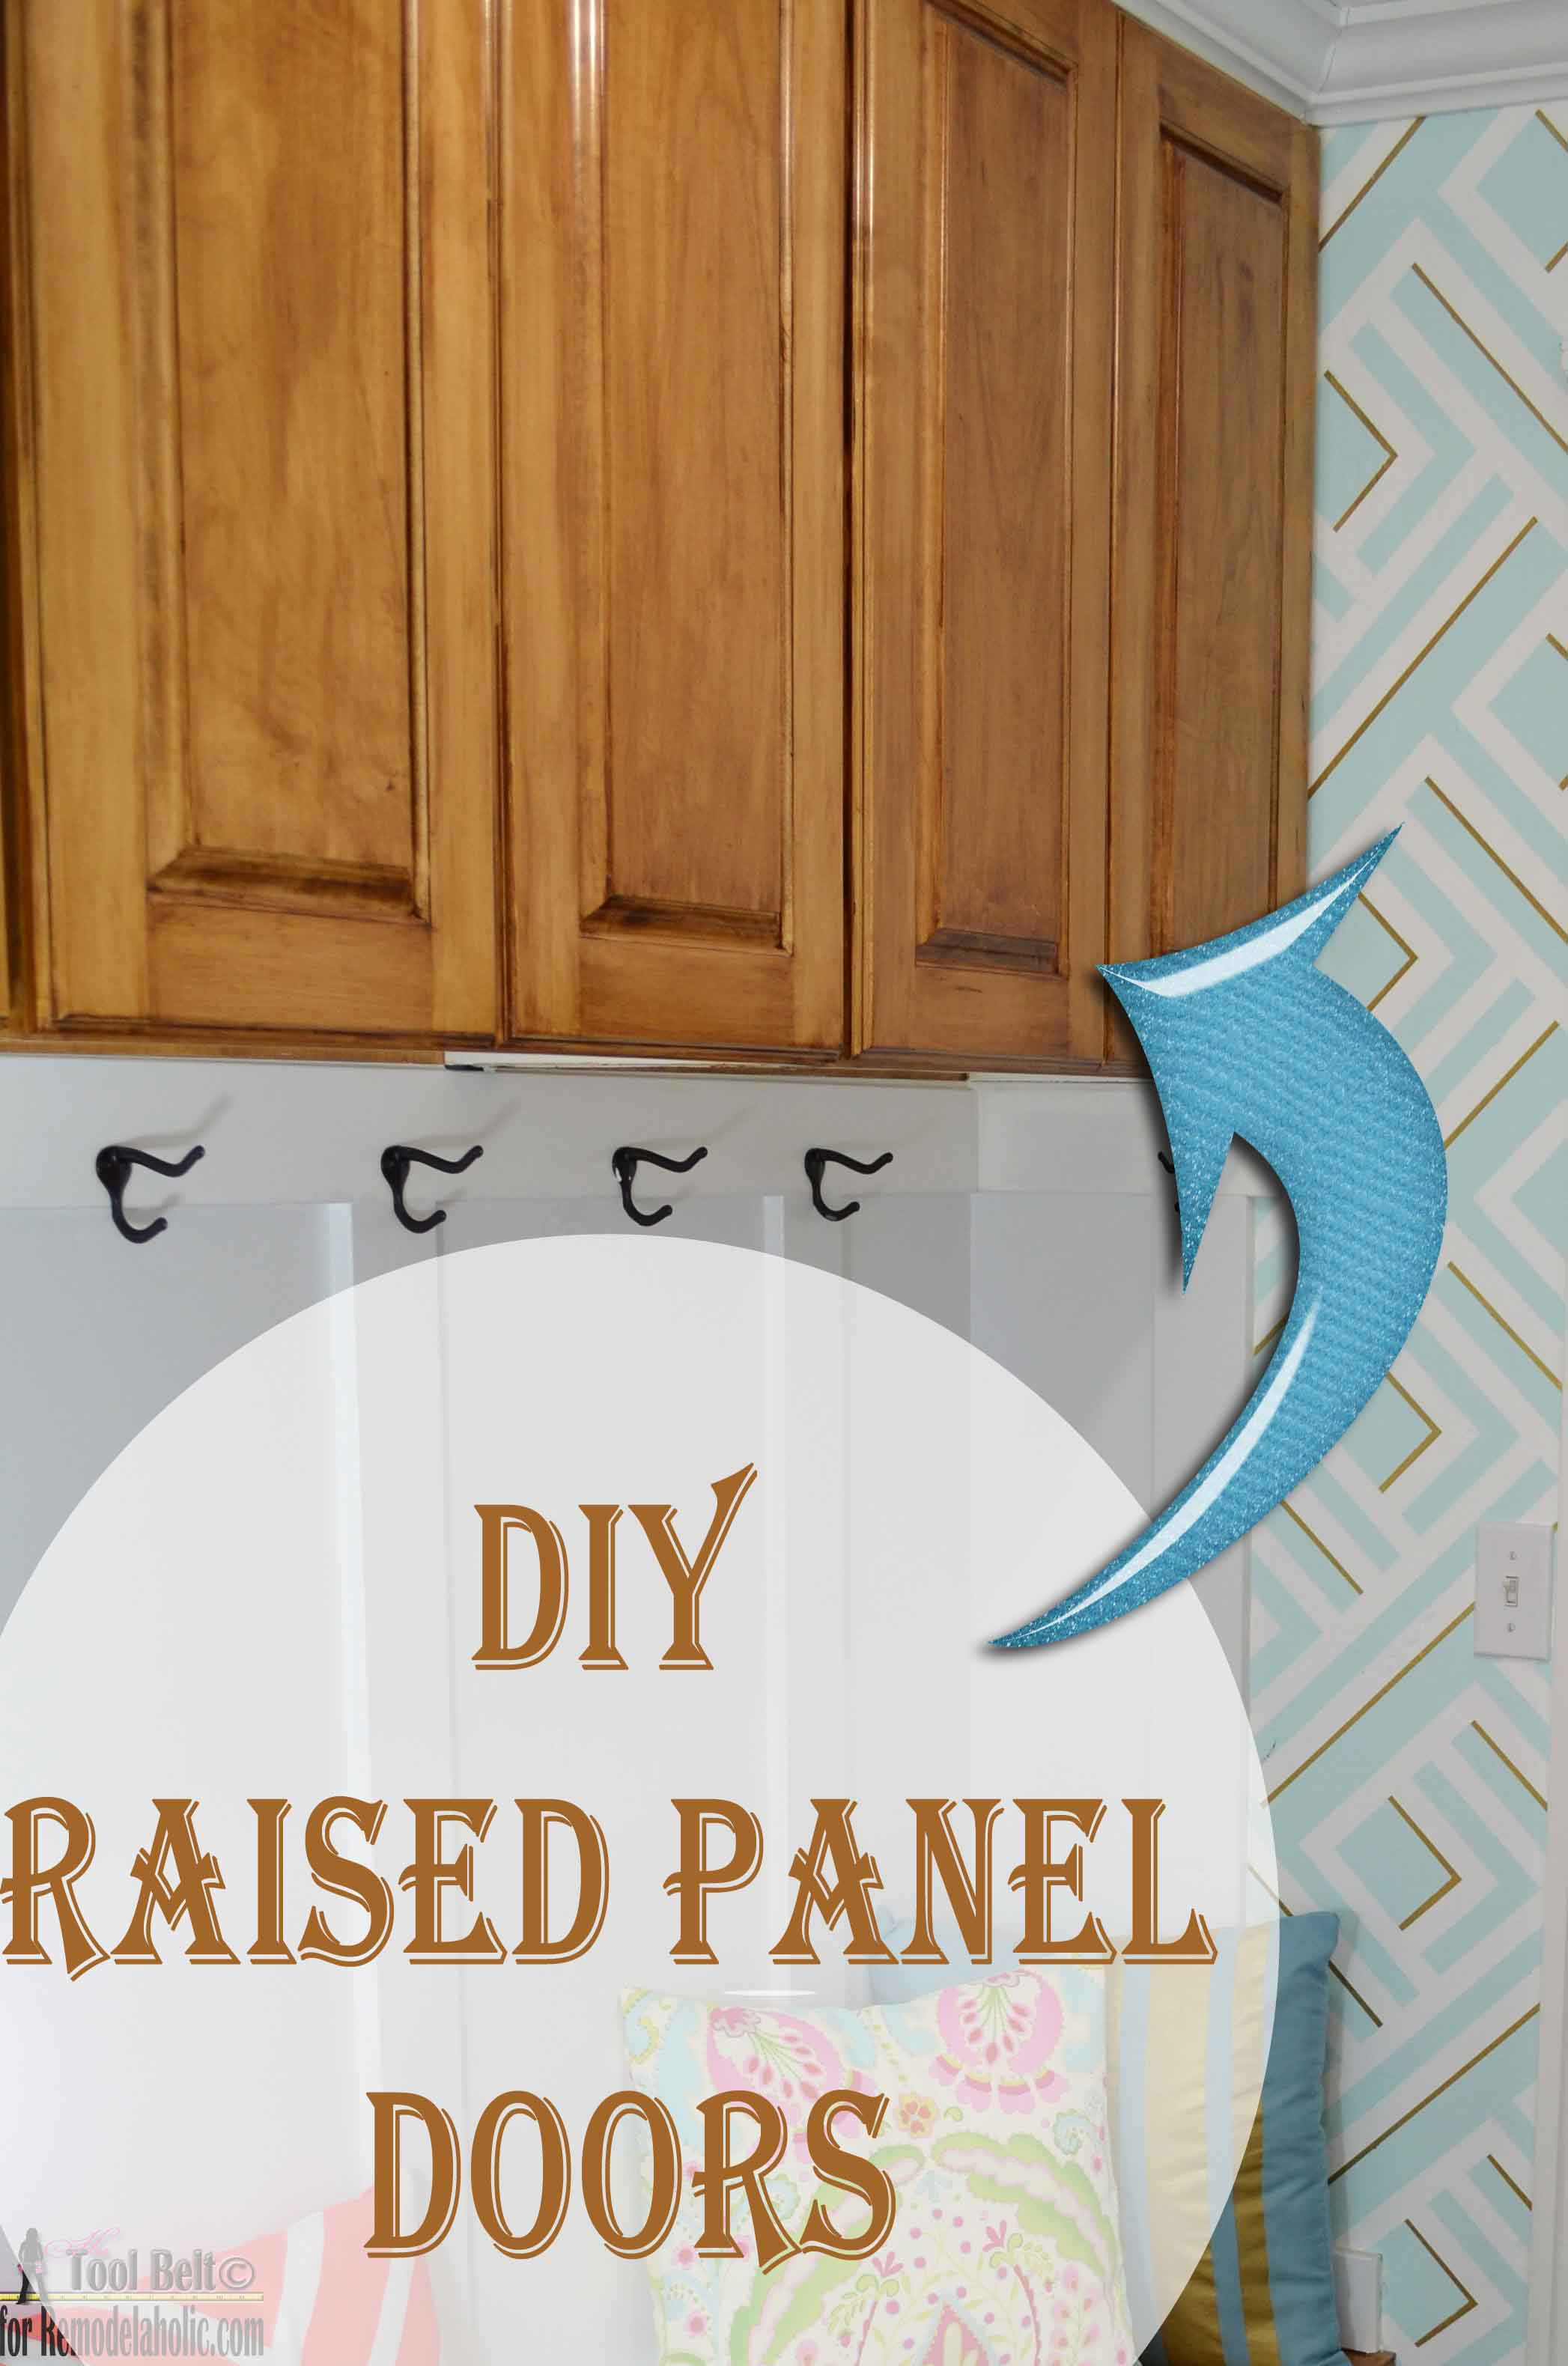 Charmant Build Your Own Custom Raised Panel Cabinet Doors For Your Home Or Projects,  Great Tutorial